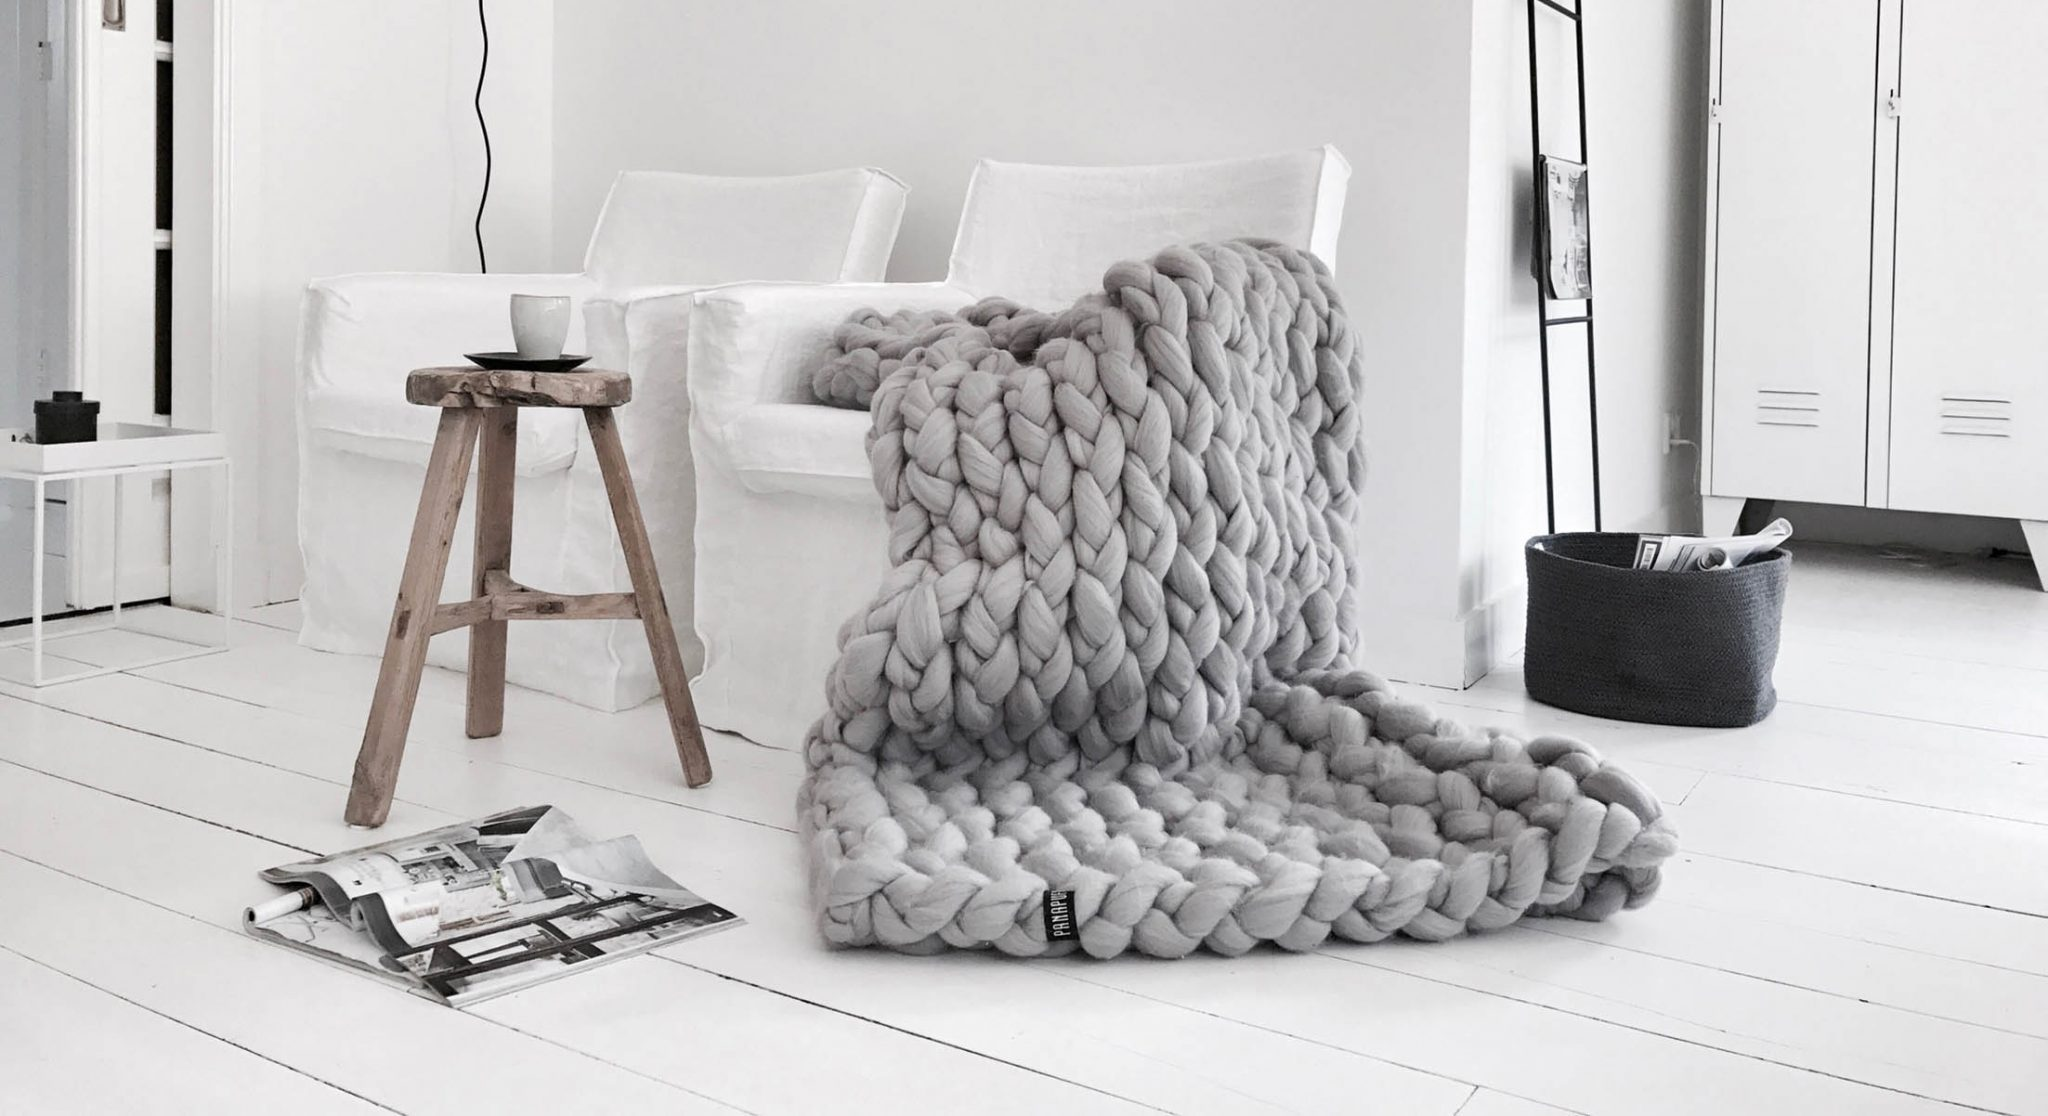 interior-design-luxurious-bedroom-chunky-knit-merino-wool-blanket